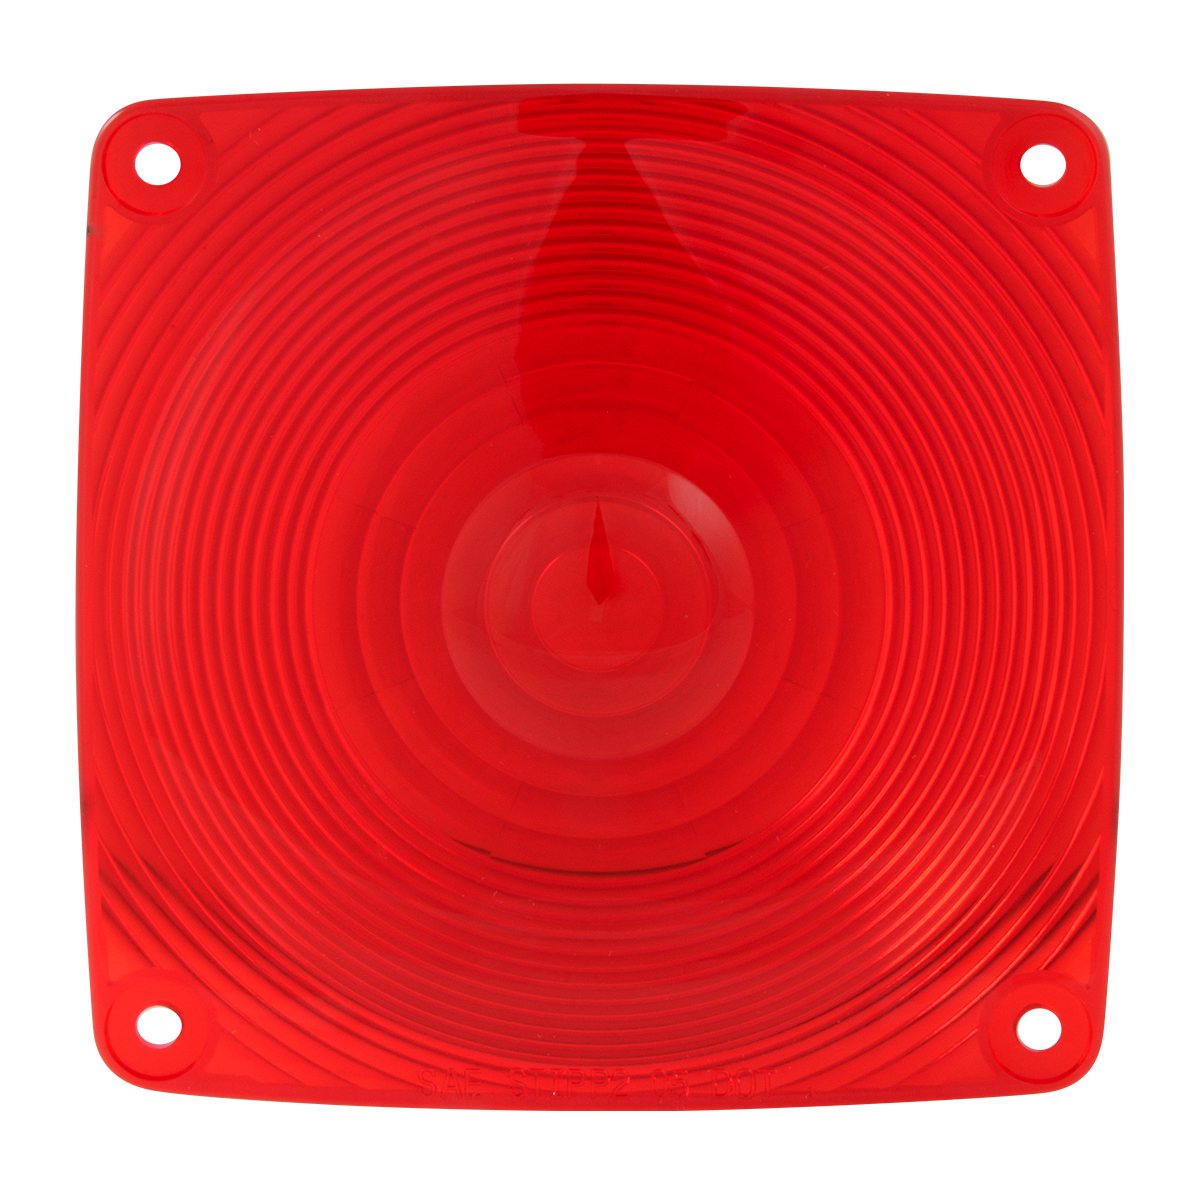 #80352 Square Red Lens